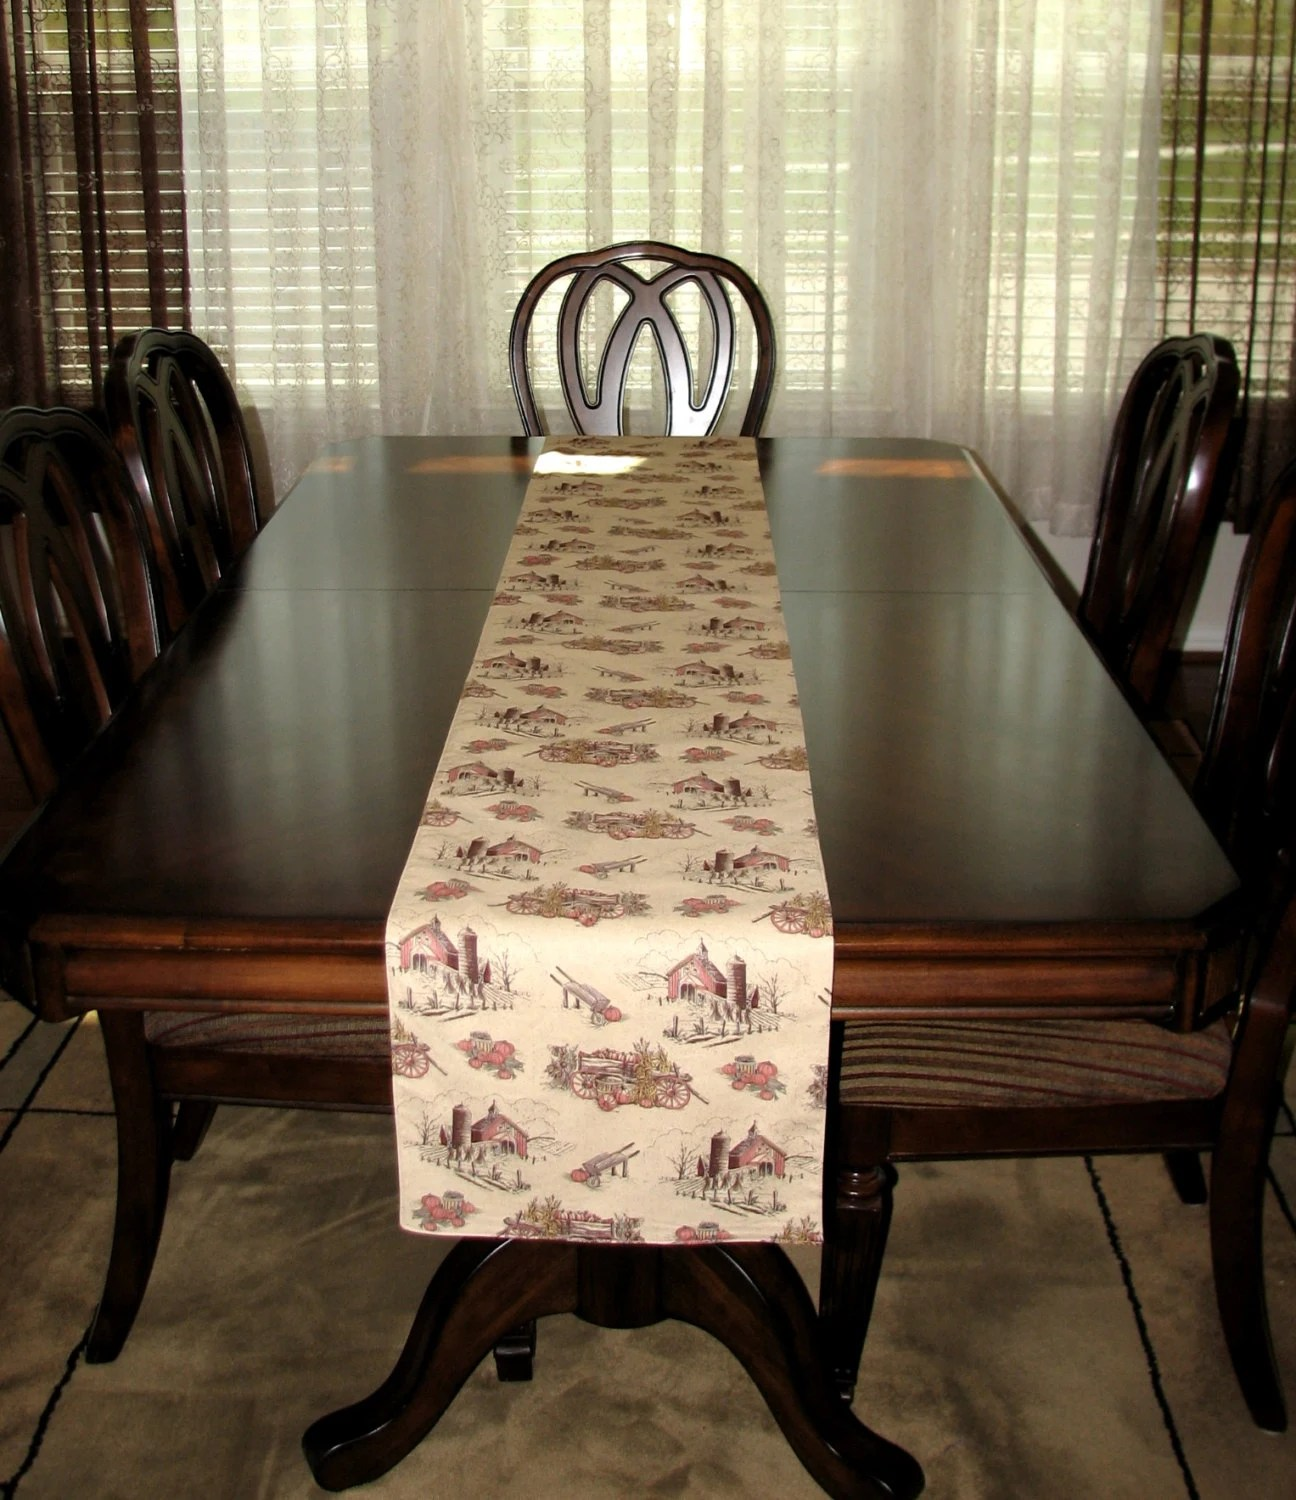 Farmhouse Style Table Runners Farmhouse Decor Rustic Home Decor Thanksgiving Table Runner